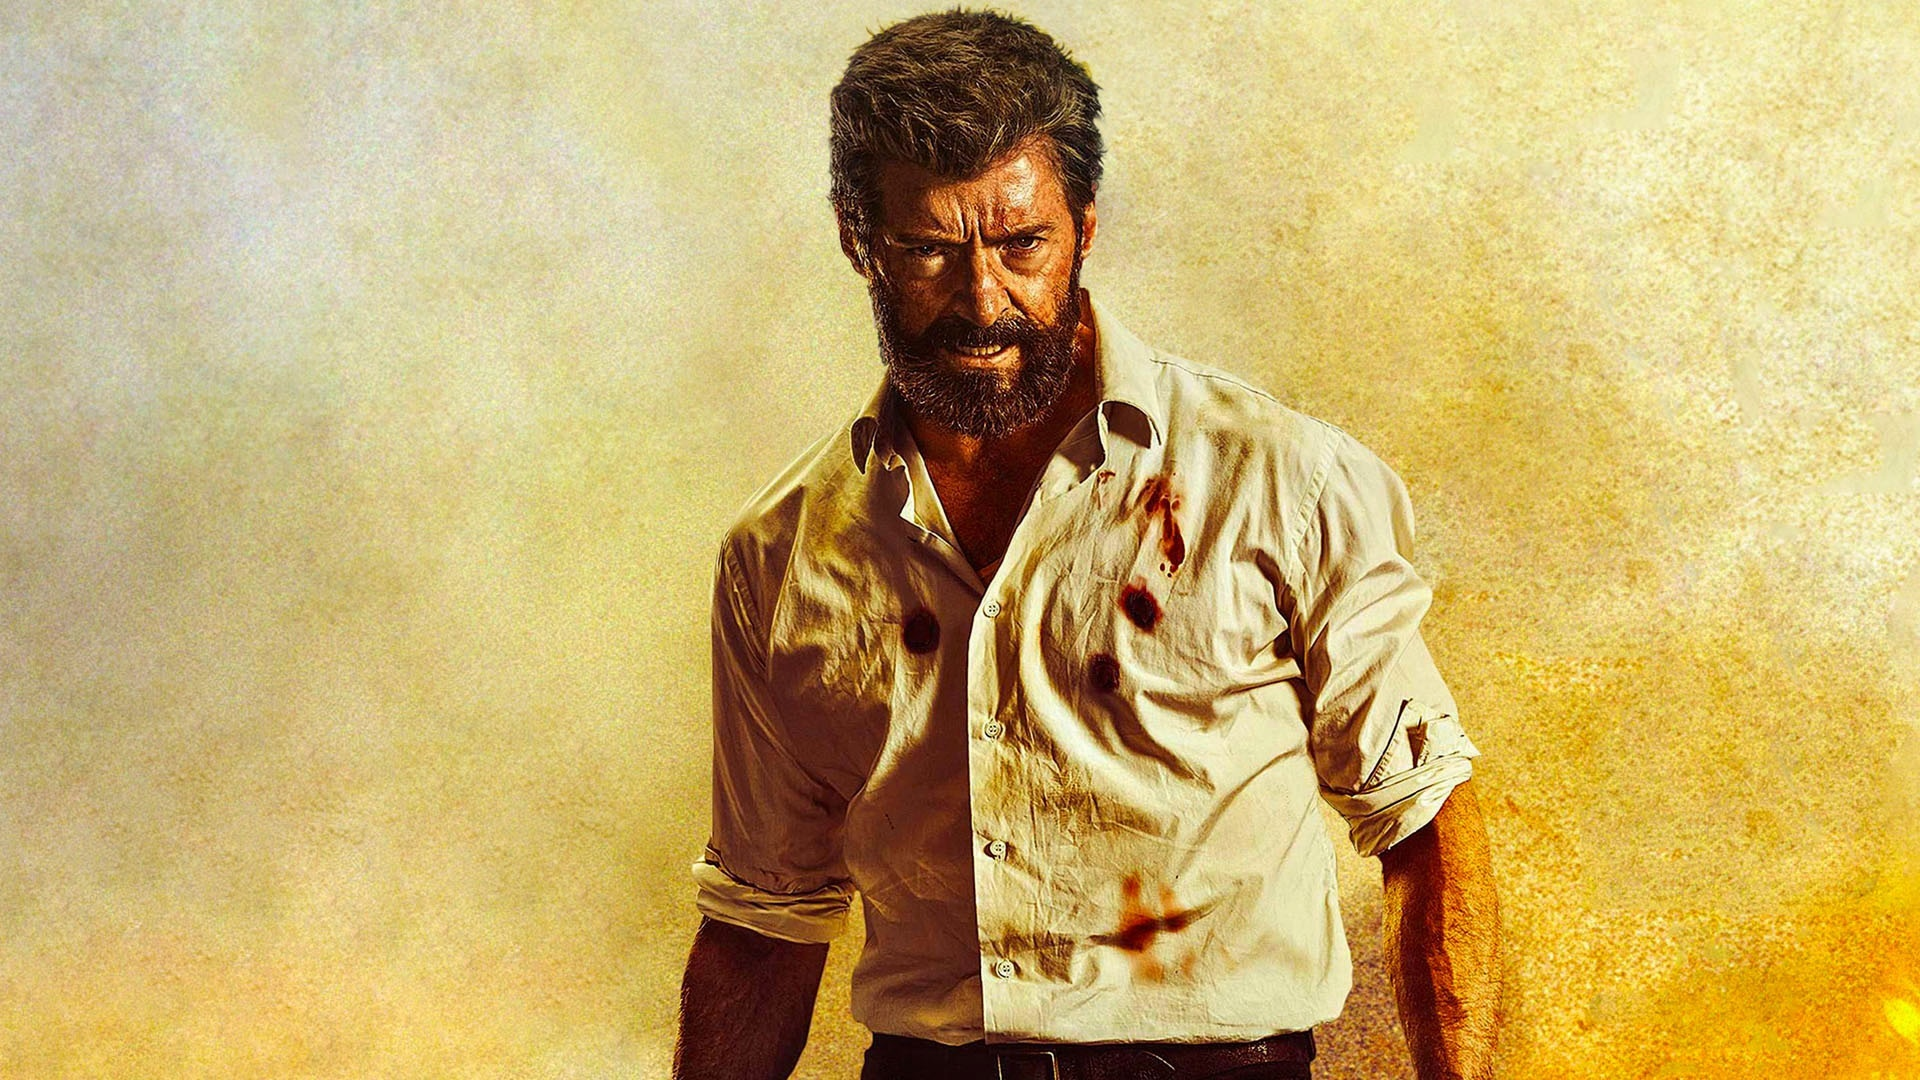 logan-2017-movie-qhd.jpg